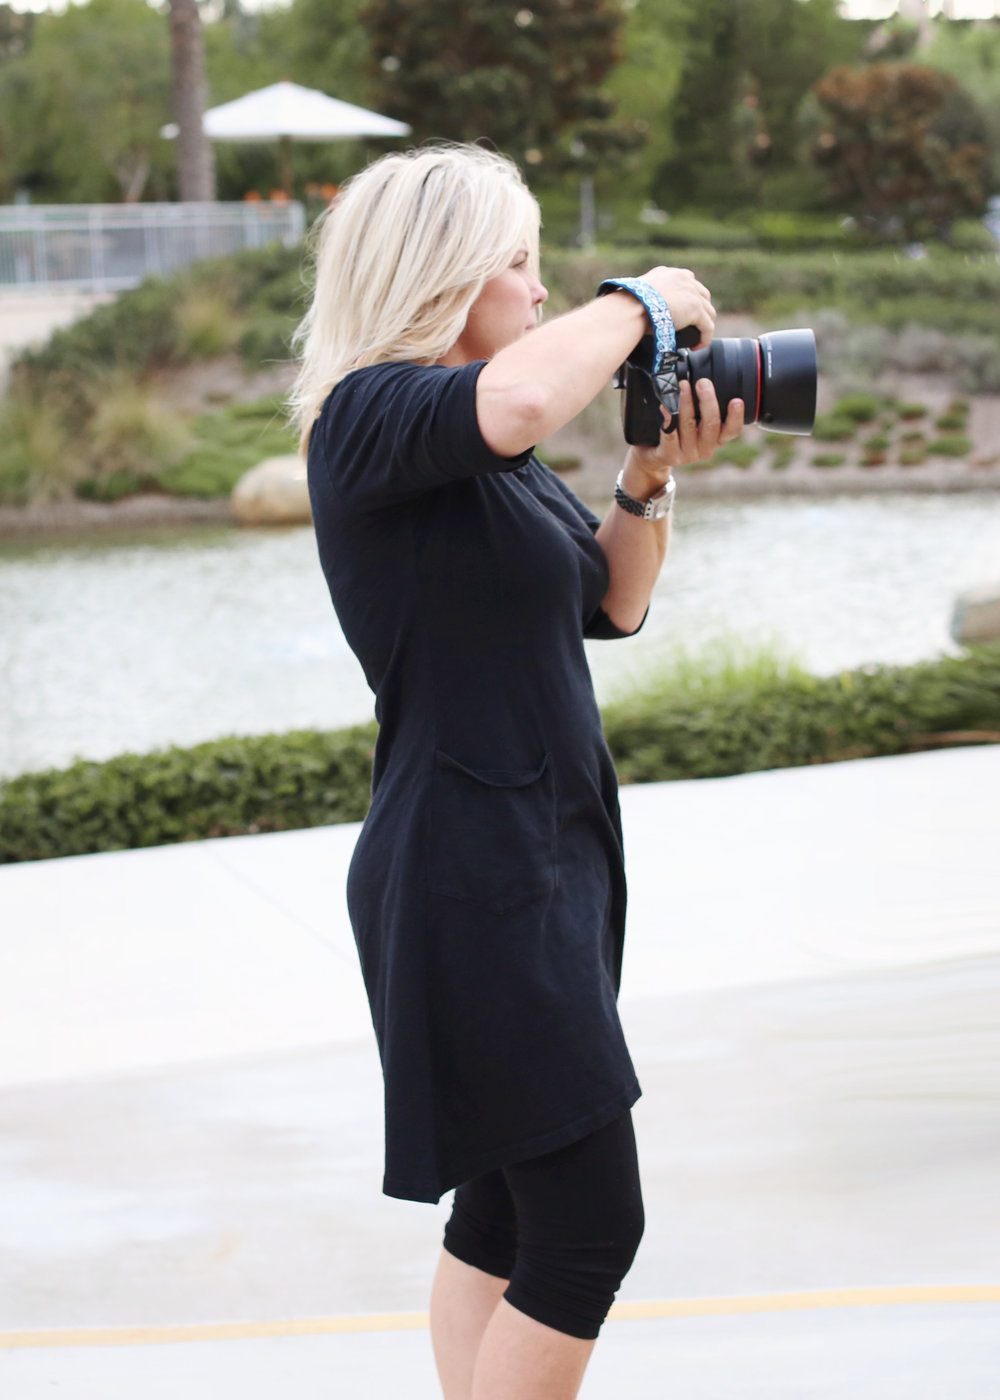 Photo of Orange County Photographer Shawna Henrie of Bleudog Fotography taking photos with her canon camera